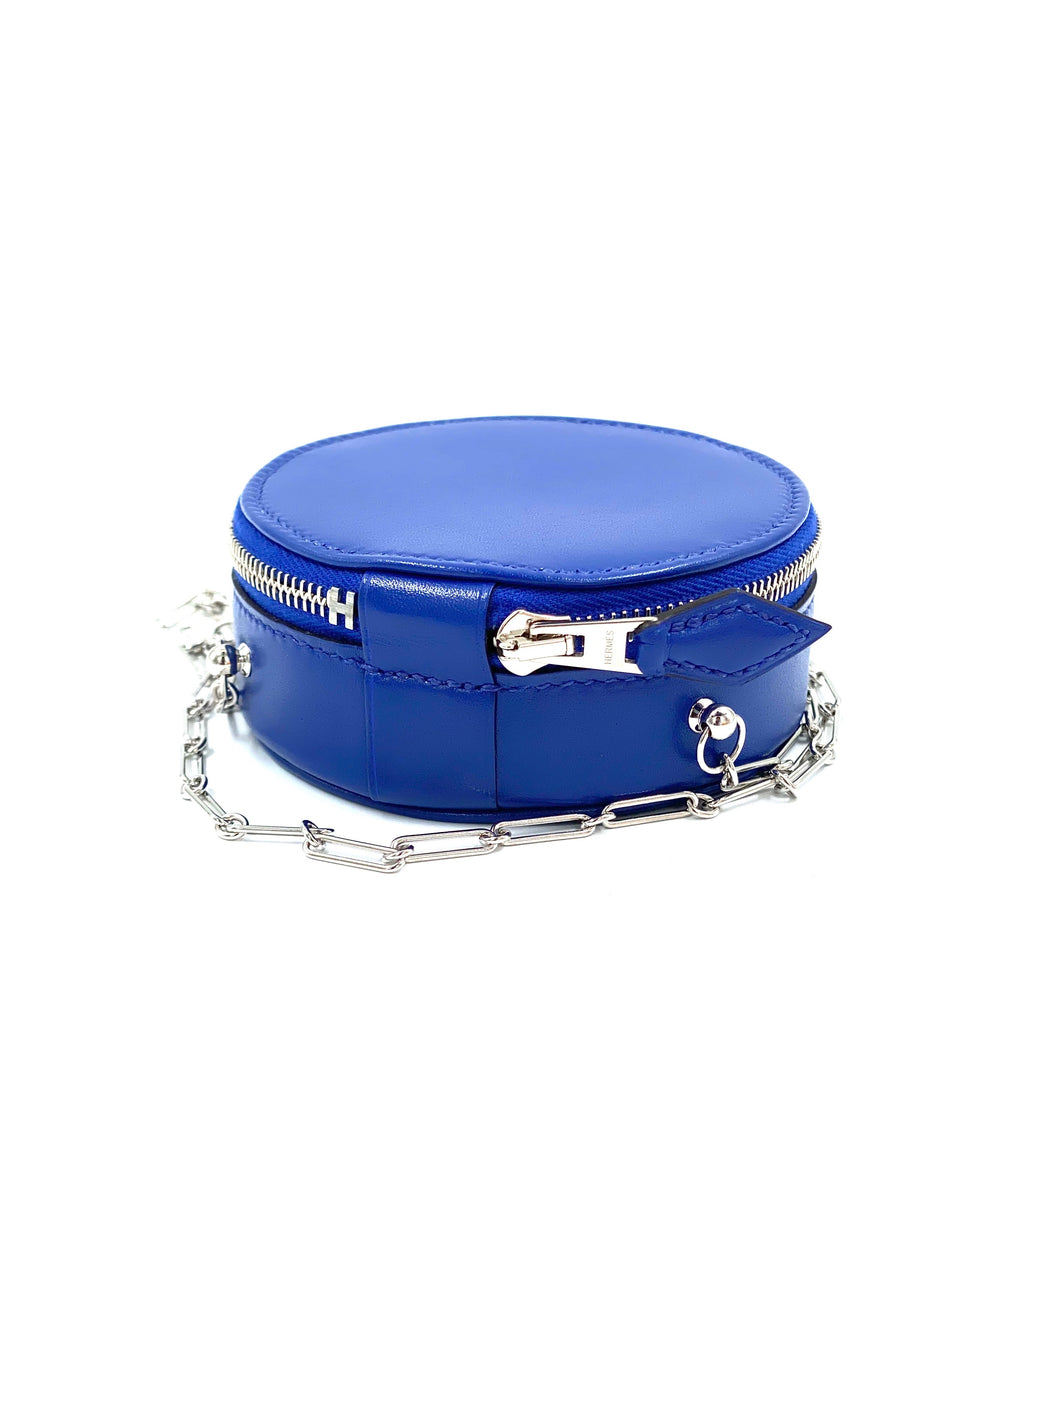 Hermes round cosmetic Mini bag with chain